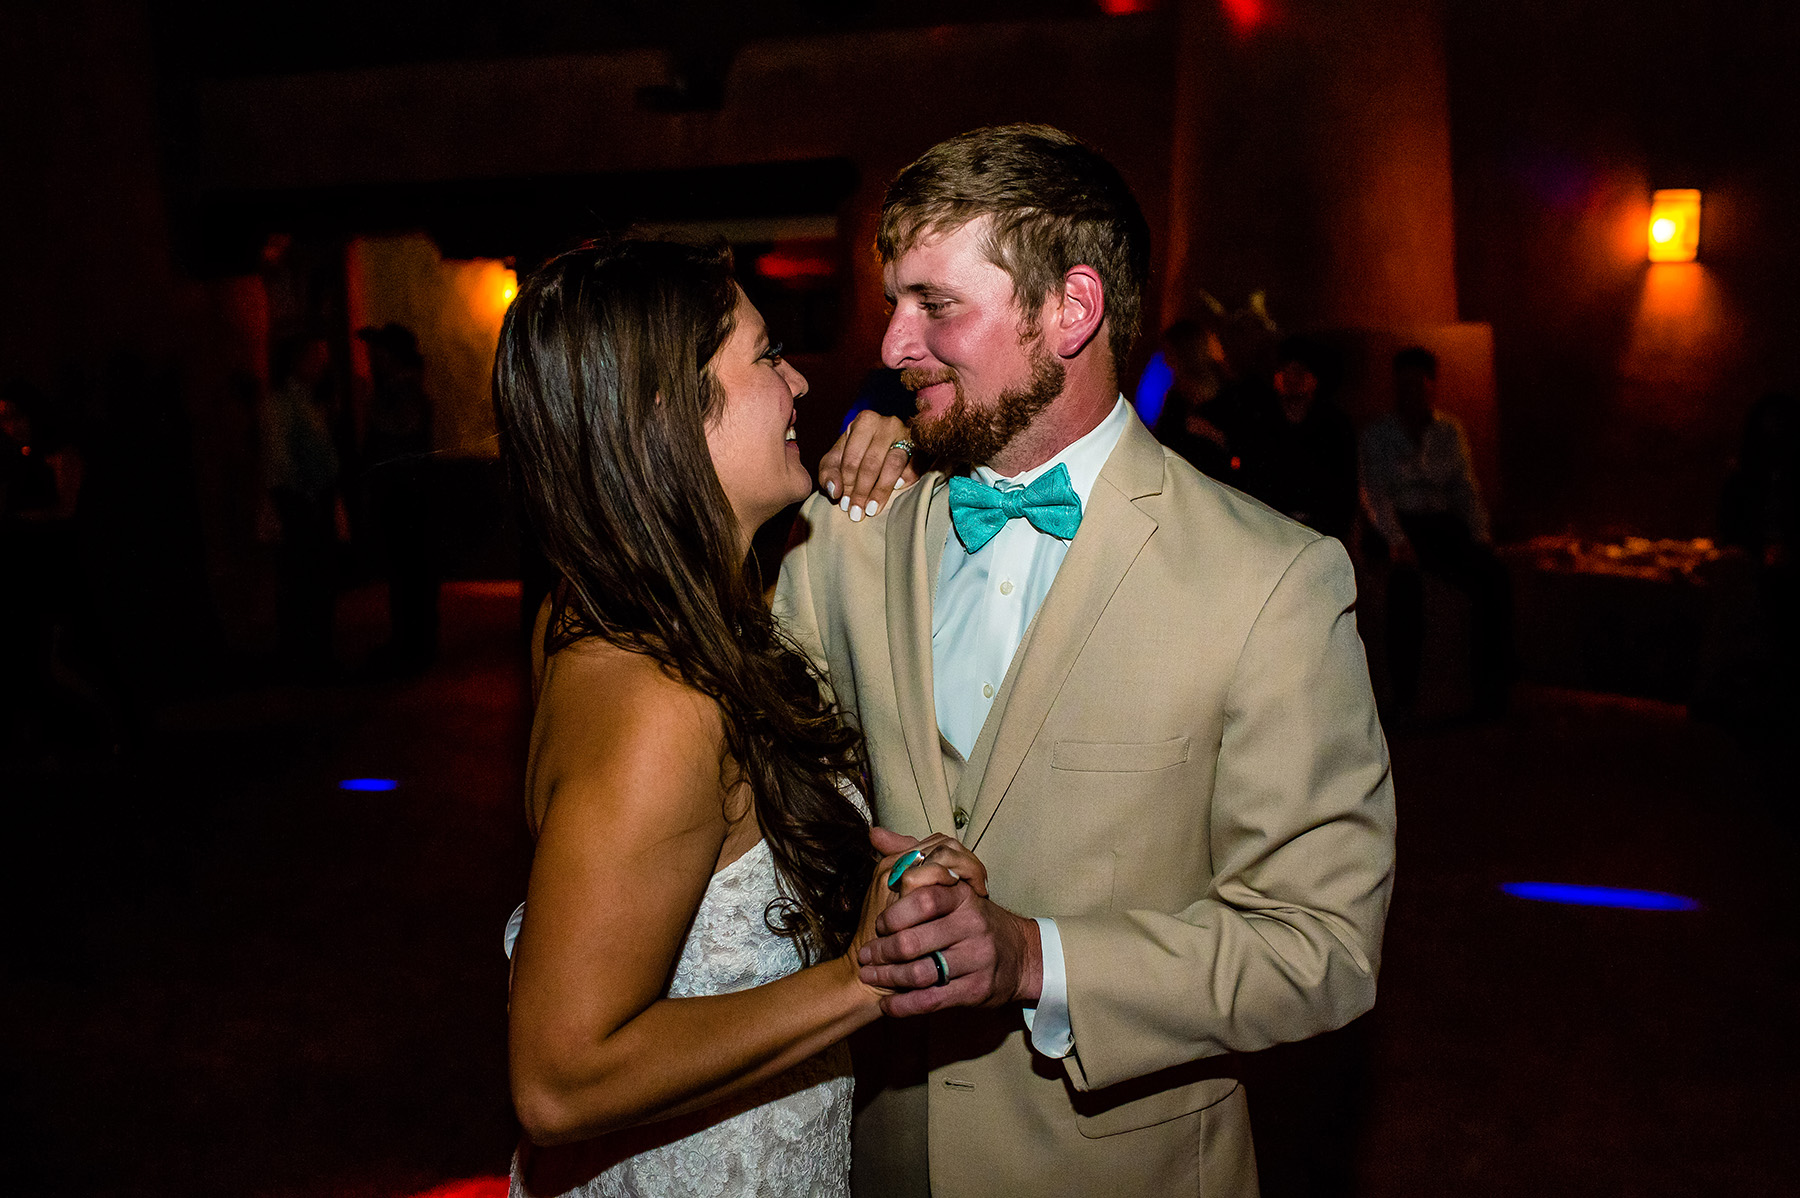 chelsea-and-brandon-ghost-ranch-wedding-2015-1025